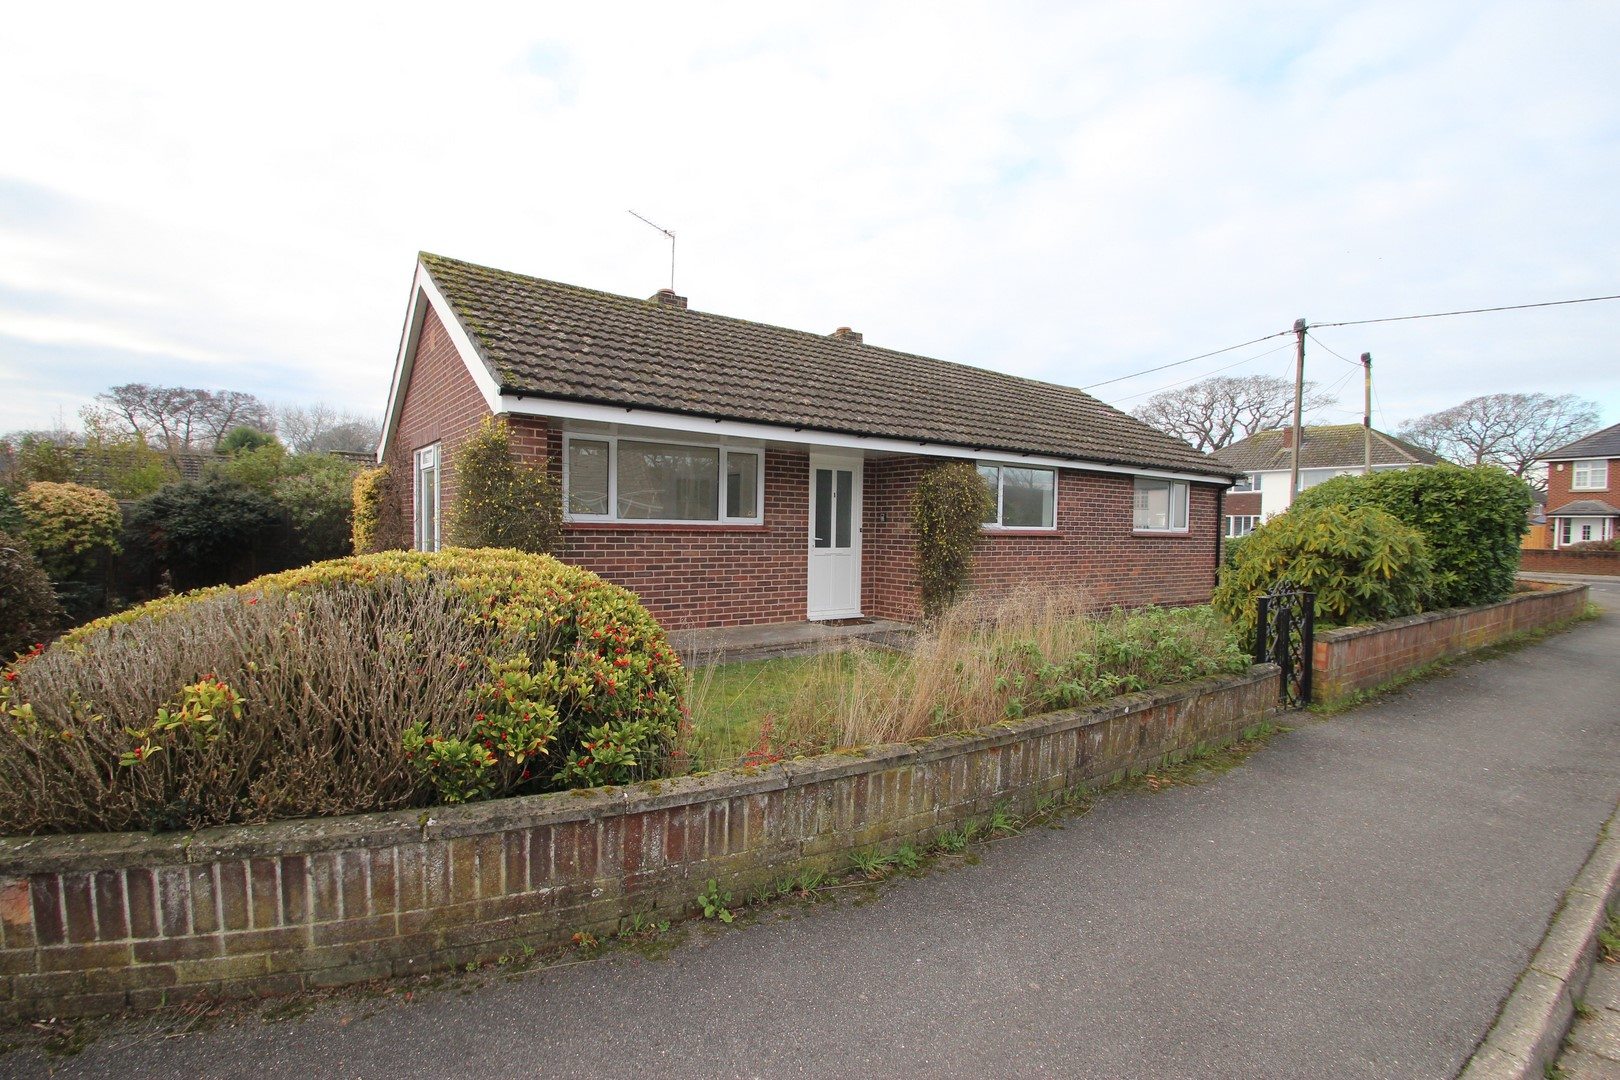 3 Bedroom Bungalow in Burton